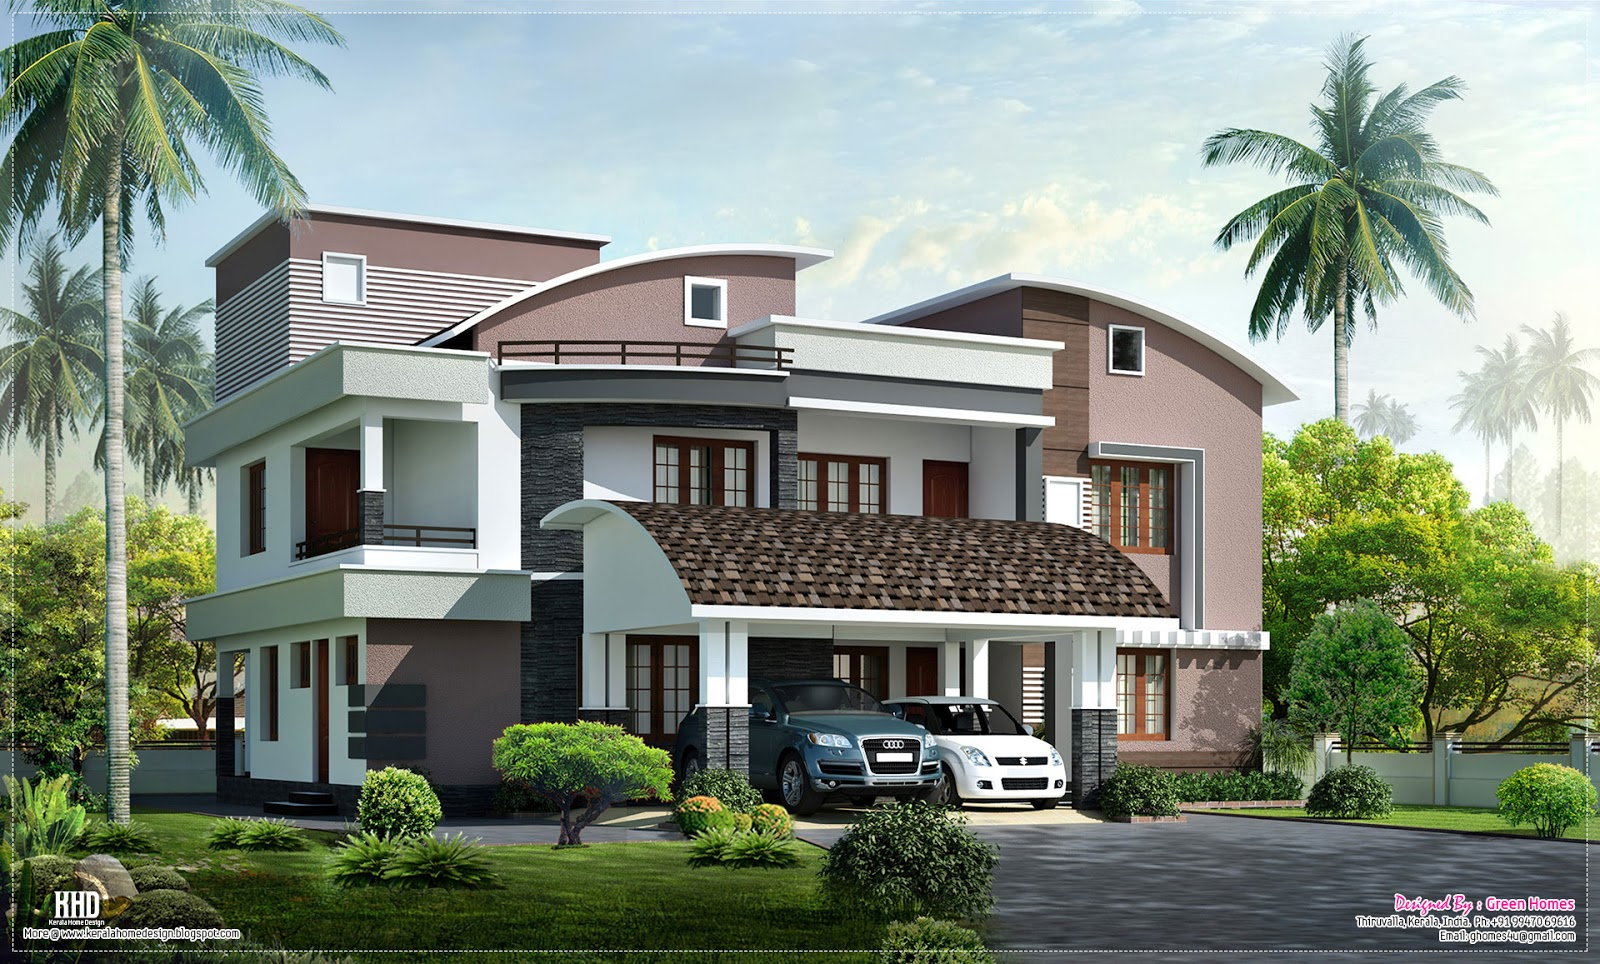 modern style luxury villa exterior design home kerala plans On maisons de style veedu kerala